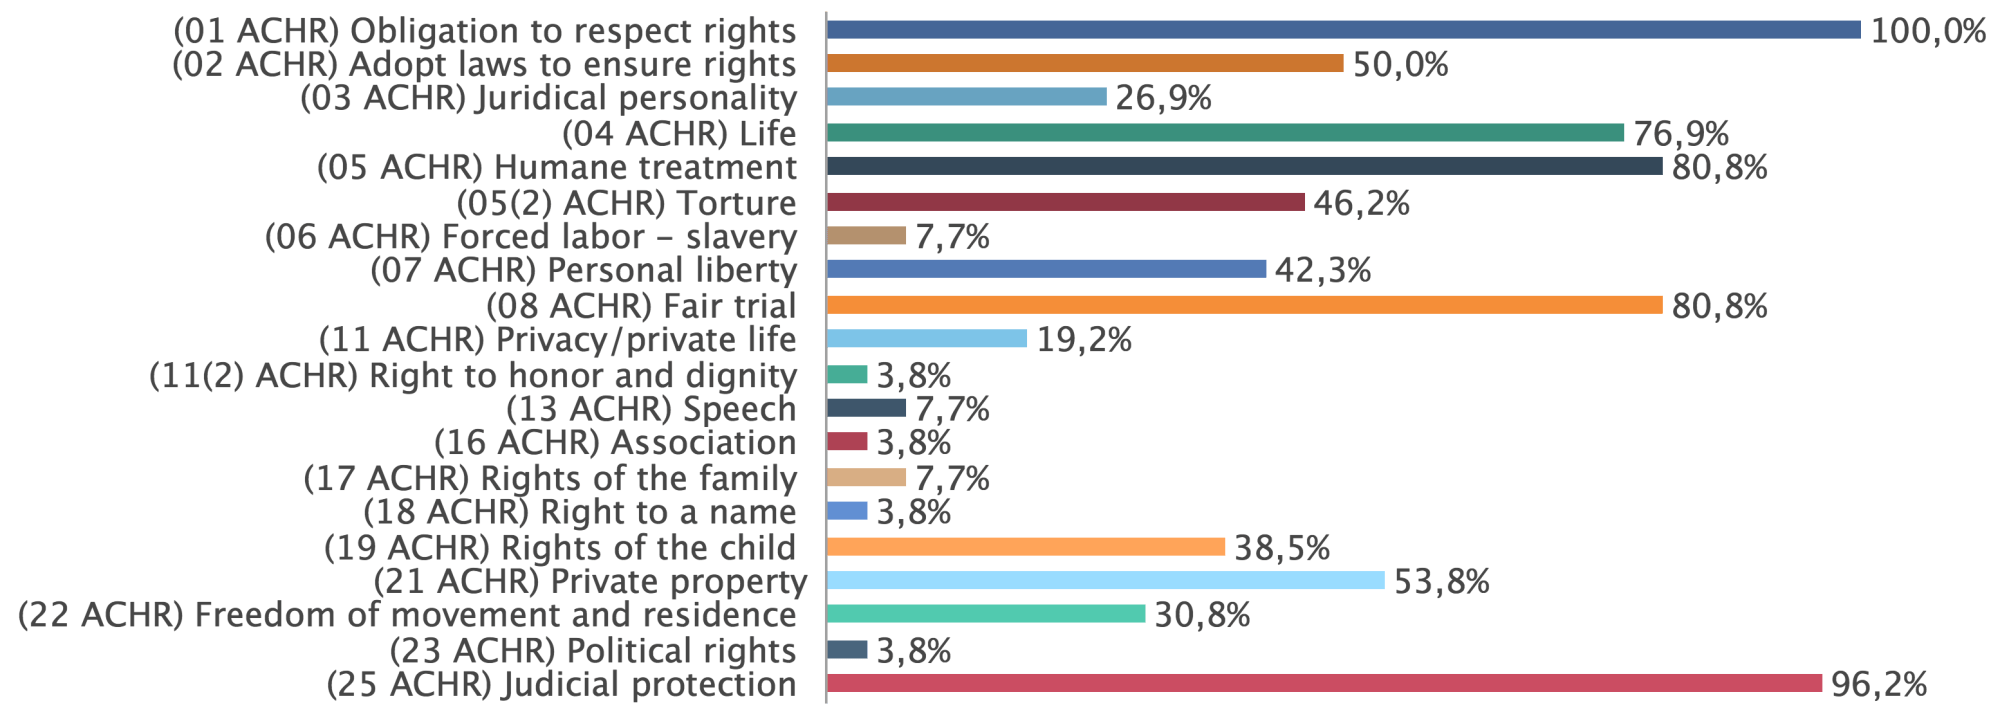 frequencies of violated articles of the American Convention on Human Rights